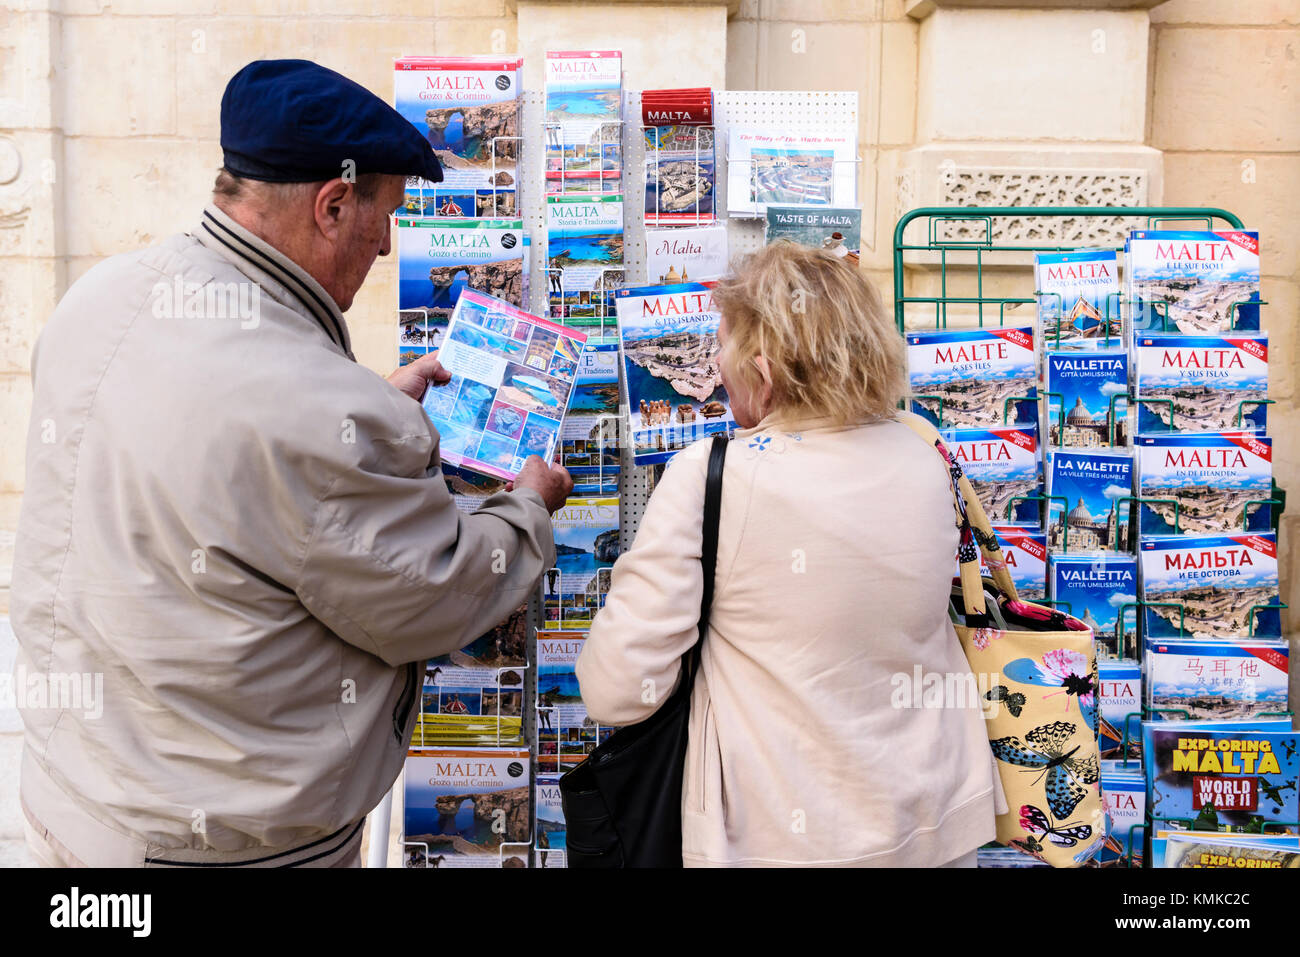 British English tourists look at guide books for sale outside a shop in Valletta, Malta - Stock Image